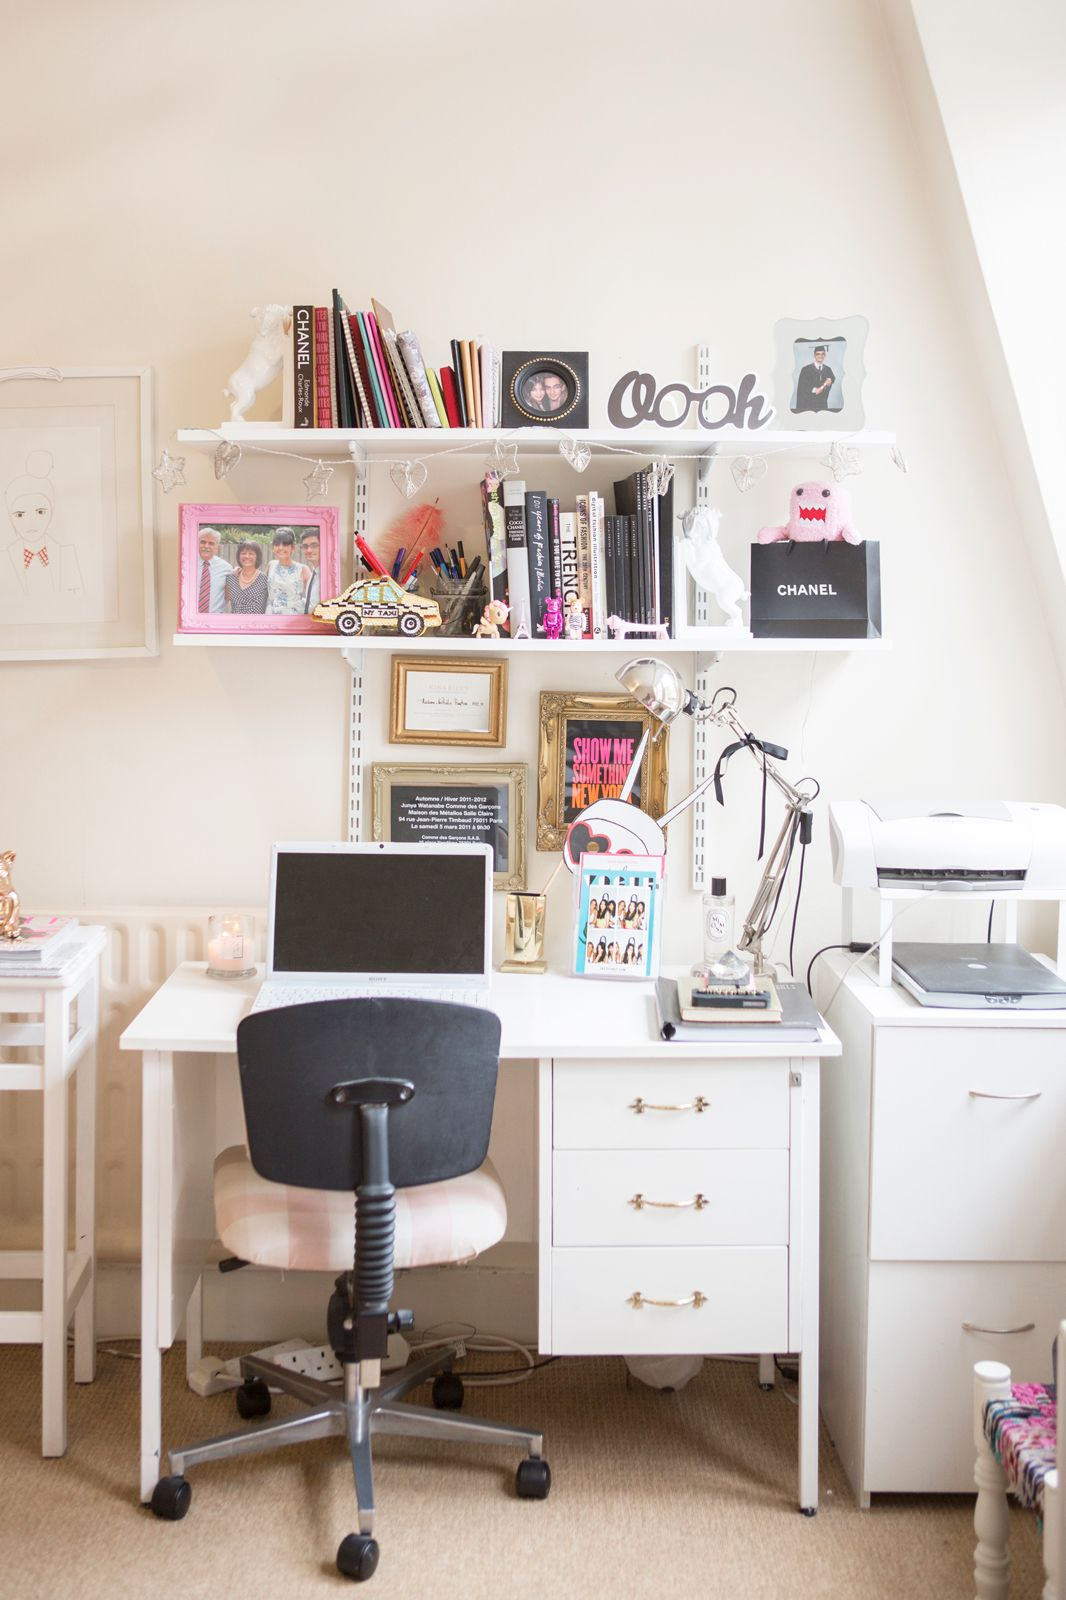 Home Office Ideas - Best Styling, Organization Tips | Spaces, Office ...